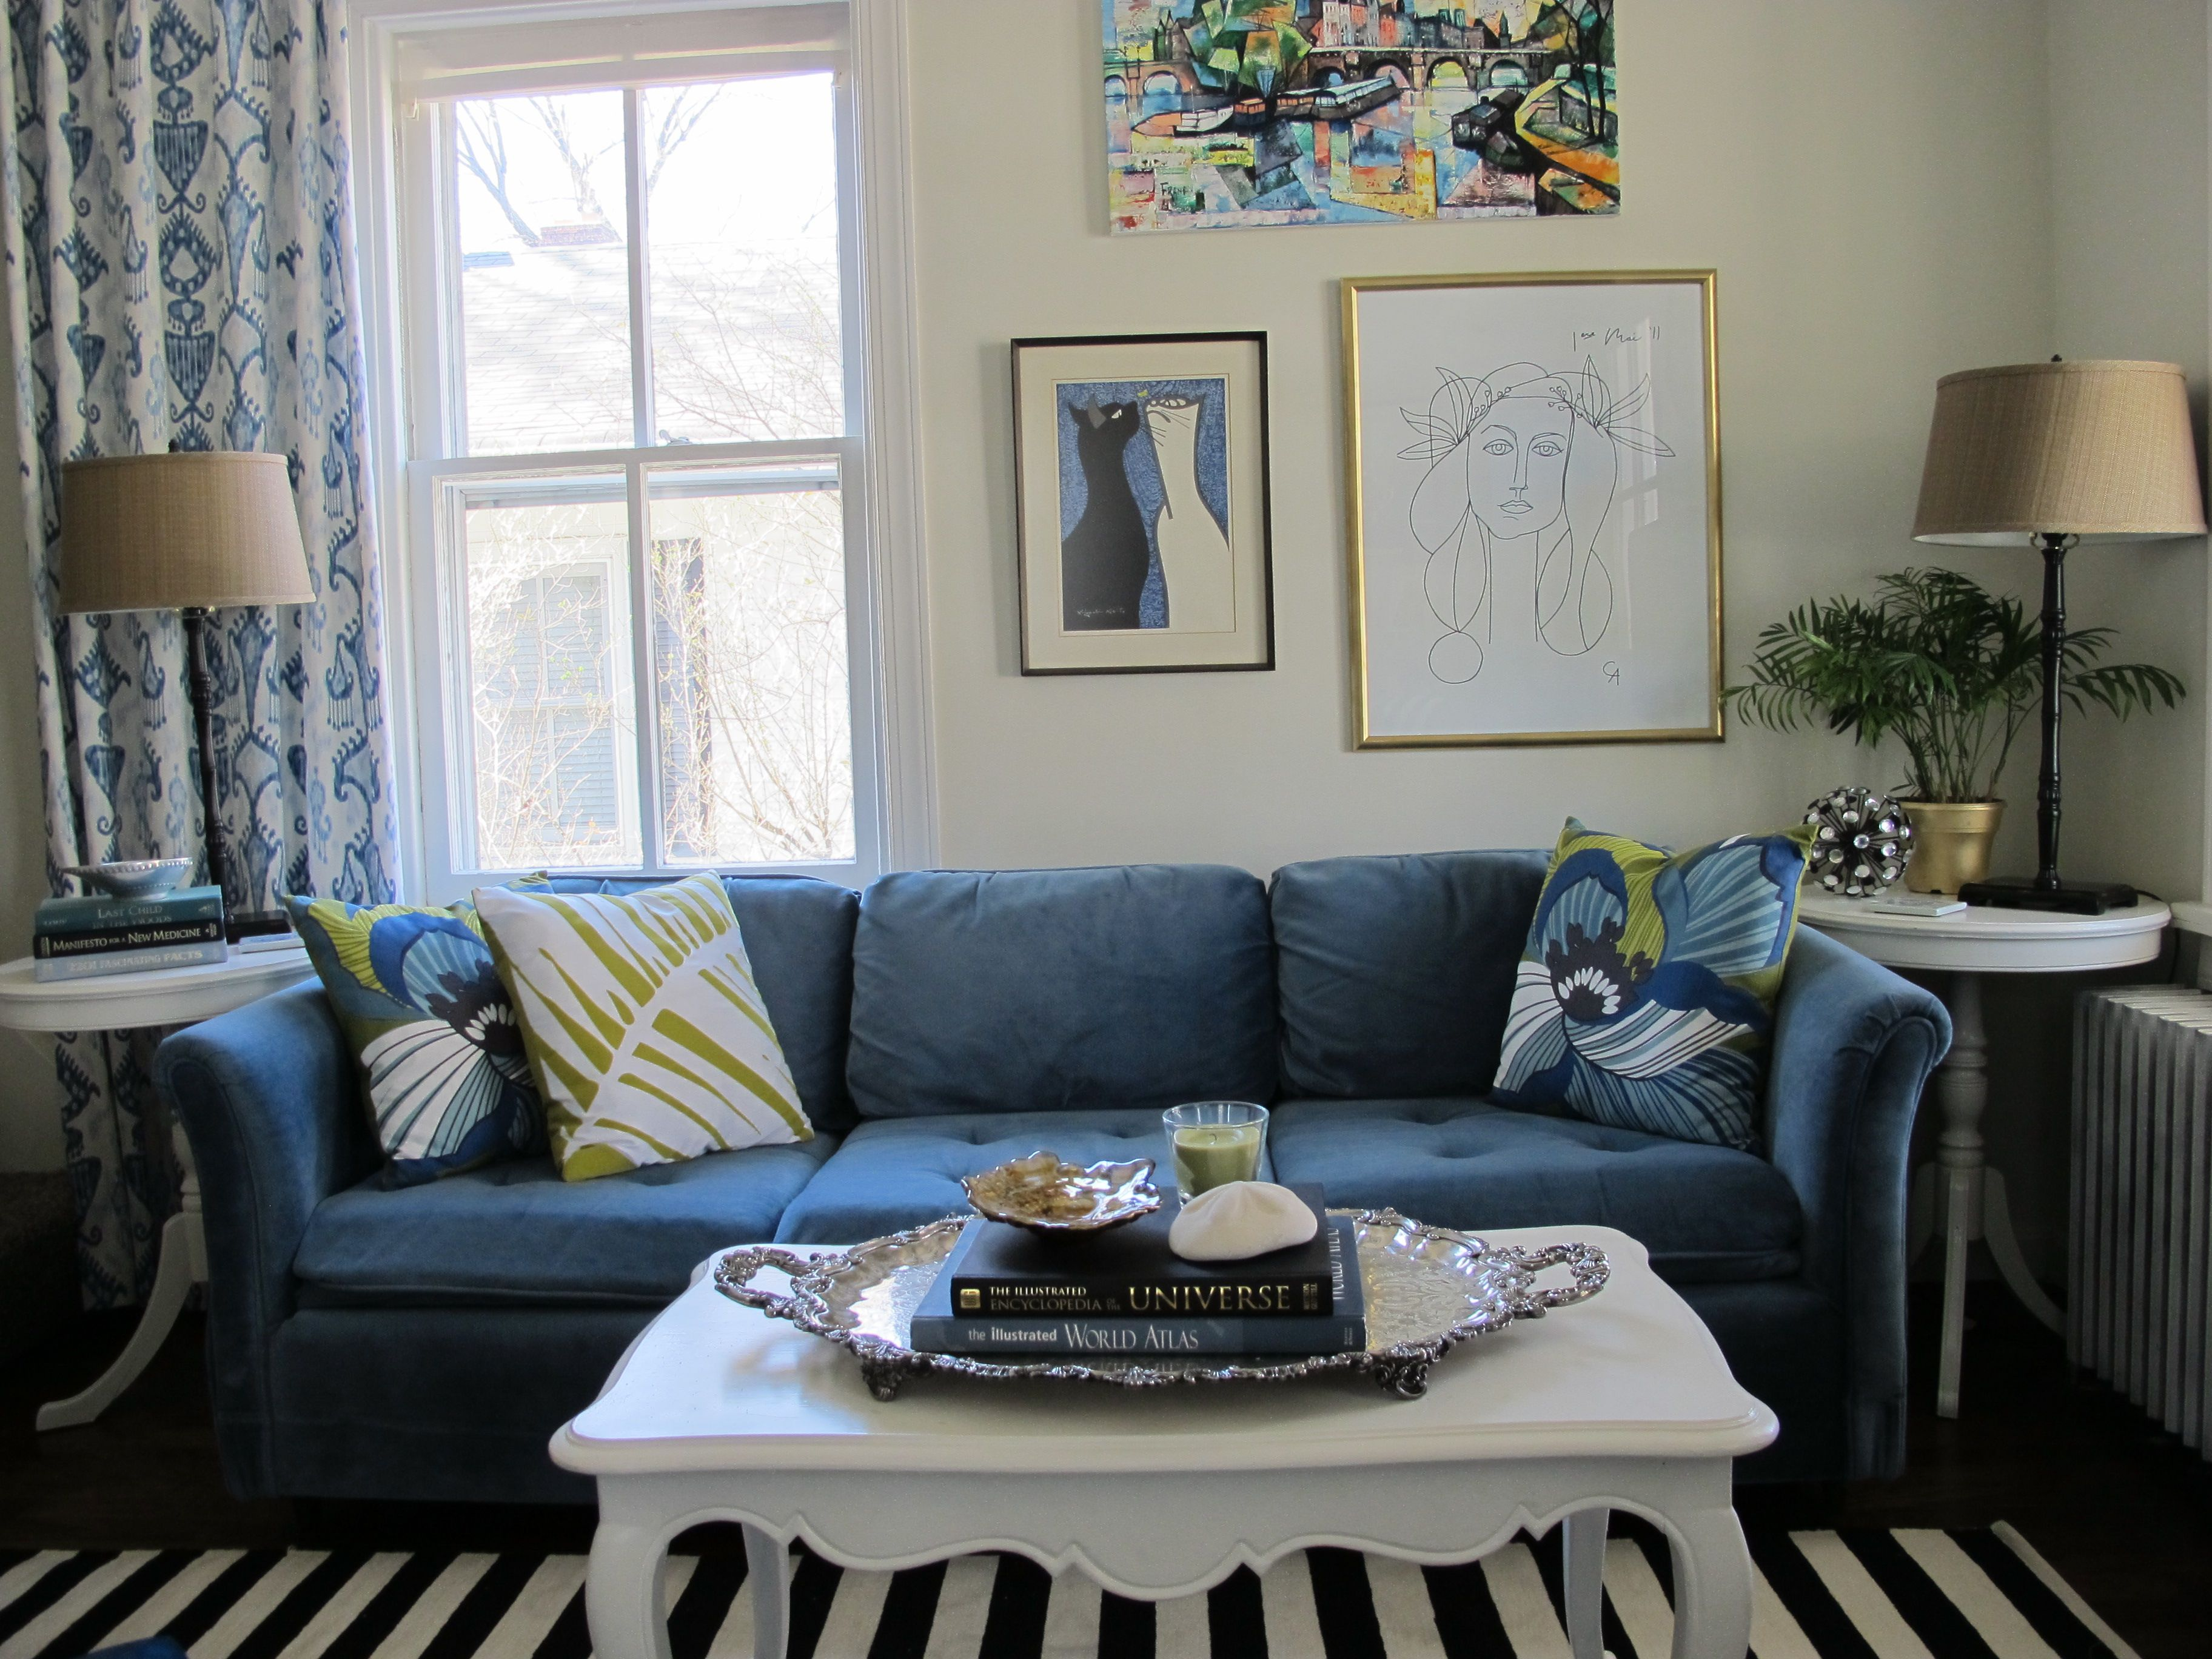 Astounding Dark Blue Bridgewater Couch And White Wooden Coffee Table On Black White Carpet As